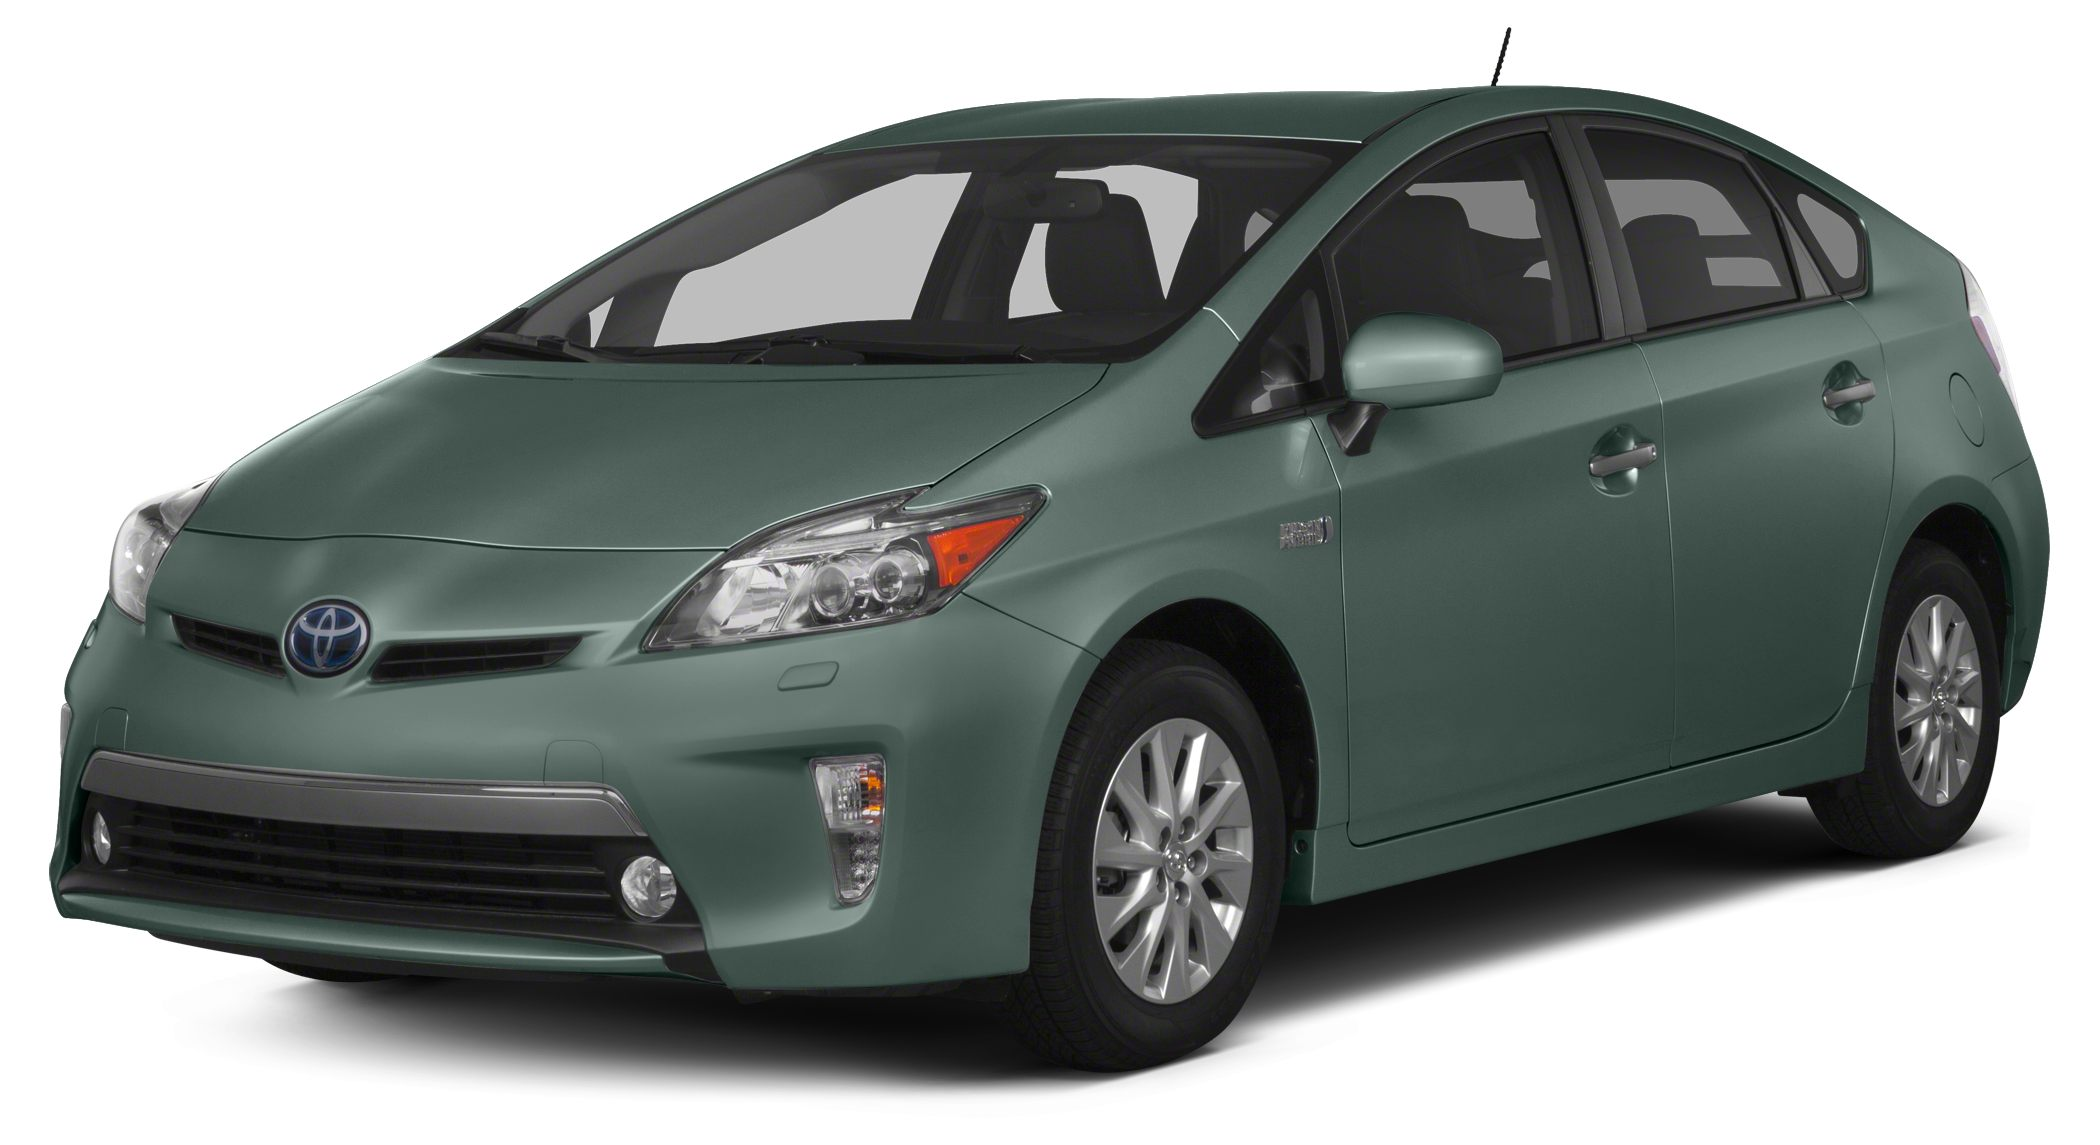 2012 Toyota Prius Plug-in Advanced CARFAX 1-Owner GREAT MILES 30682 PRICED TO MOVE 5400 below